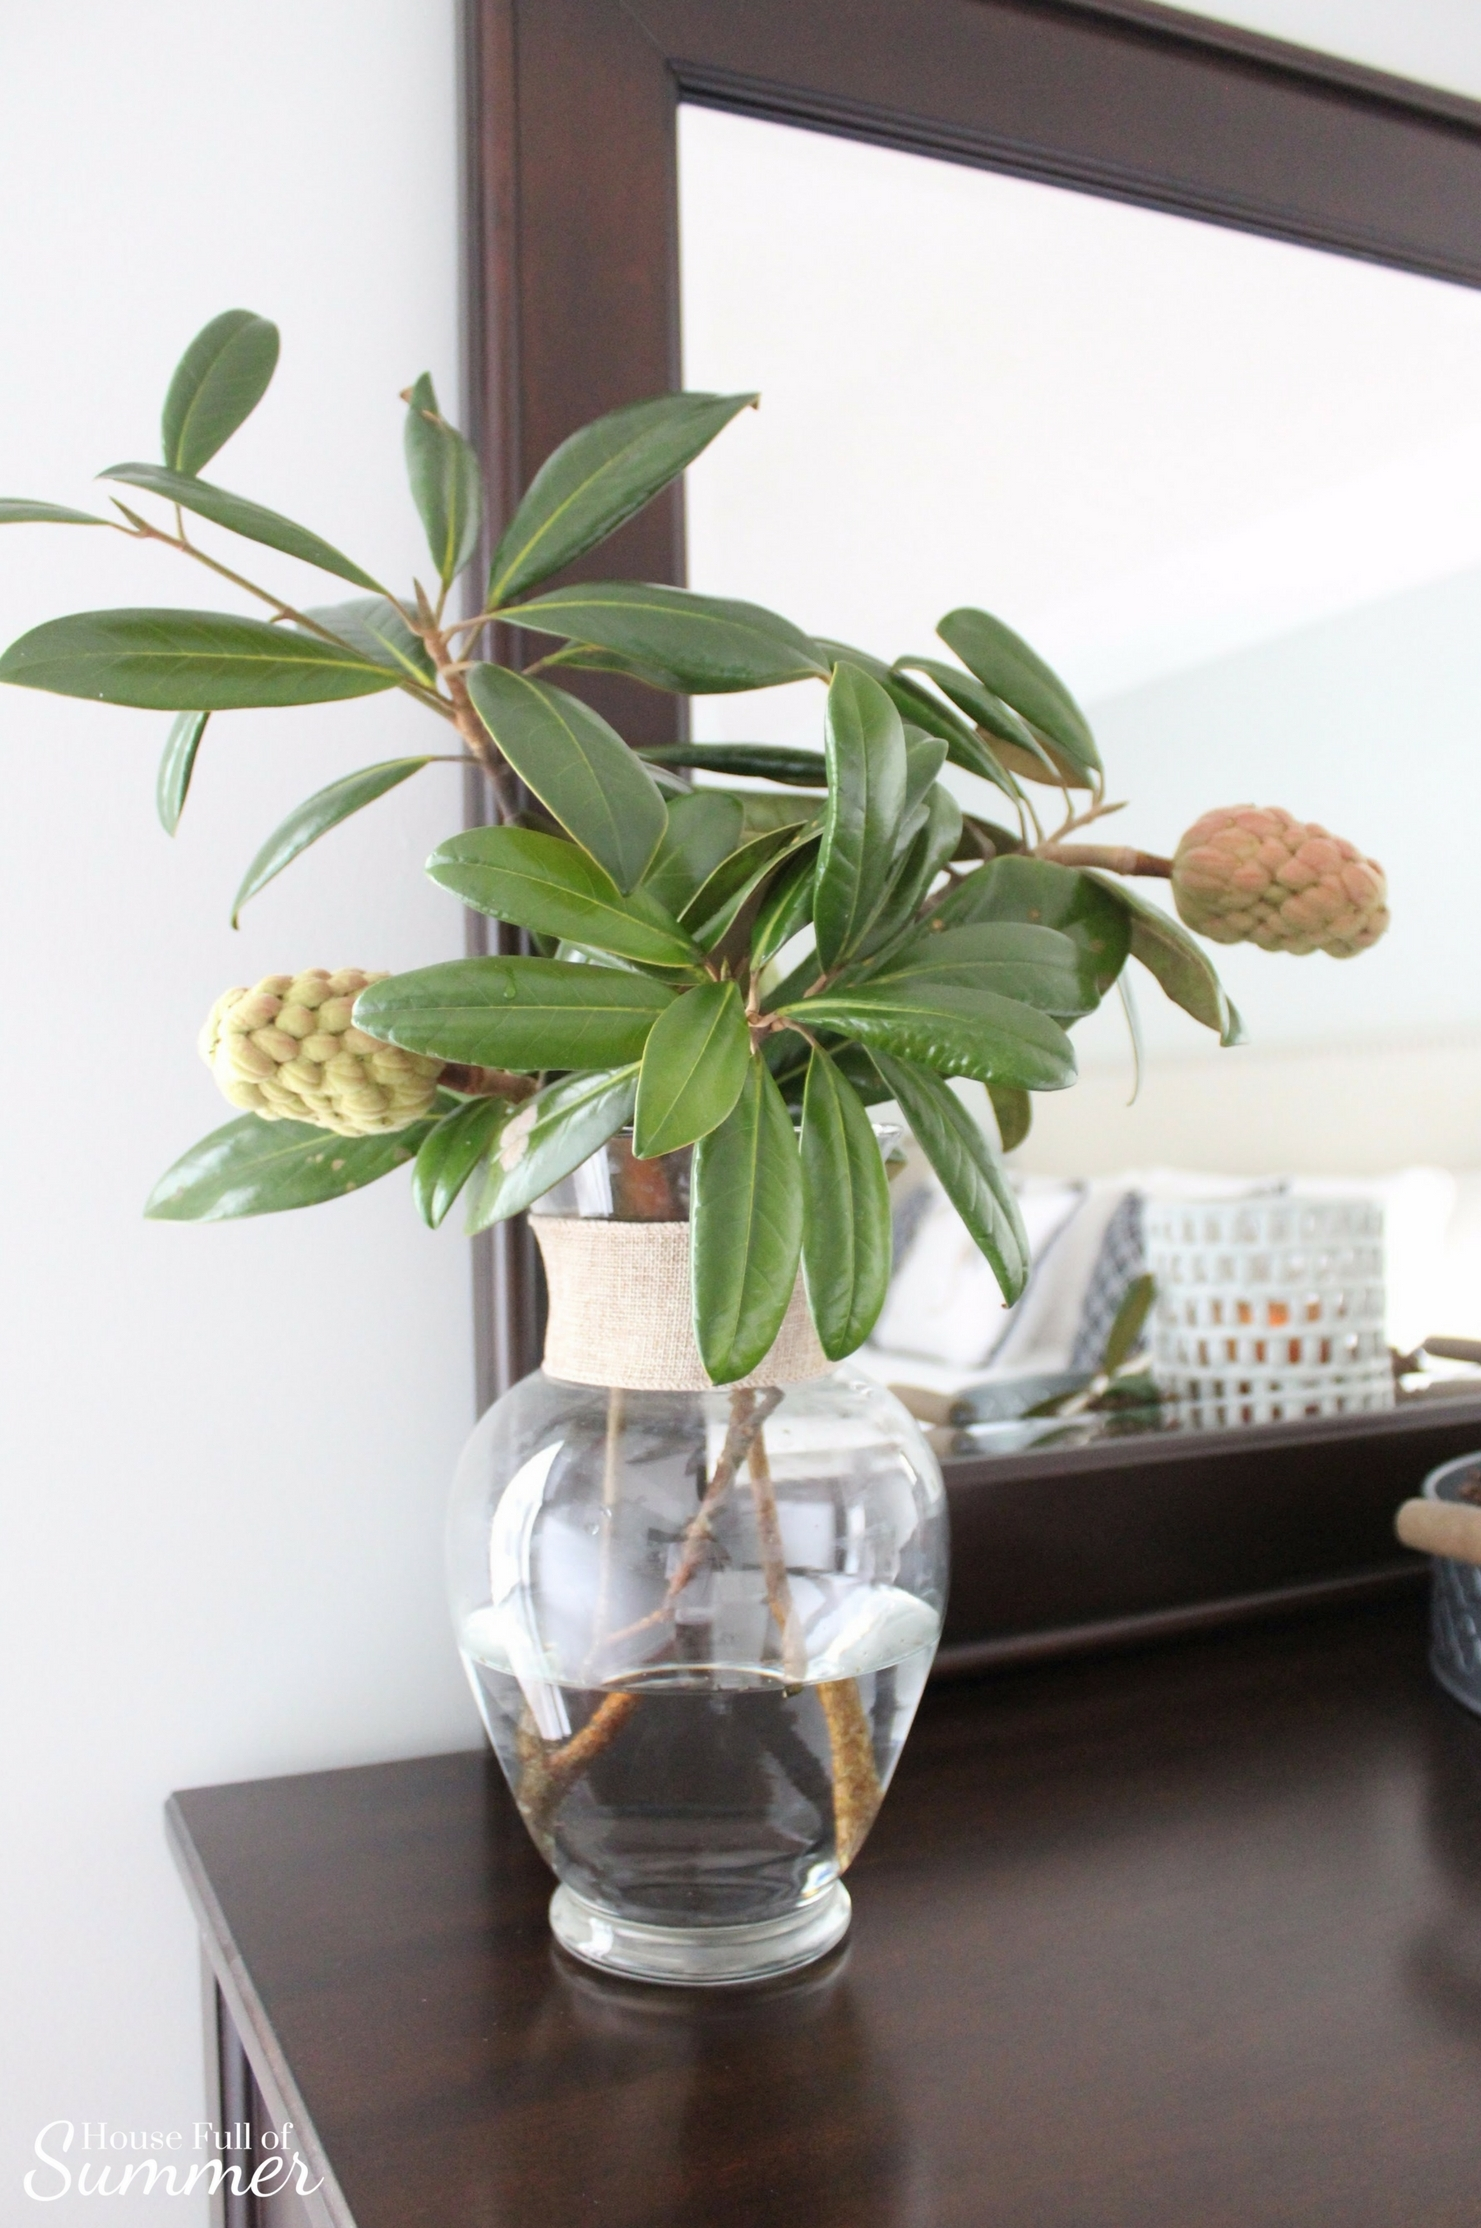 House Full of Summer: Fall Home Tour Blog Hop - Cozy, Coastal, Chic Master Bedroom decor,  decorating on a budget,fall decor ideas, coastal bedroom ideas, table styling, fresh trimmings, decorating with greenery, southern charm, magnolia branches